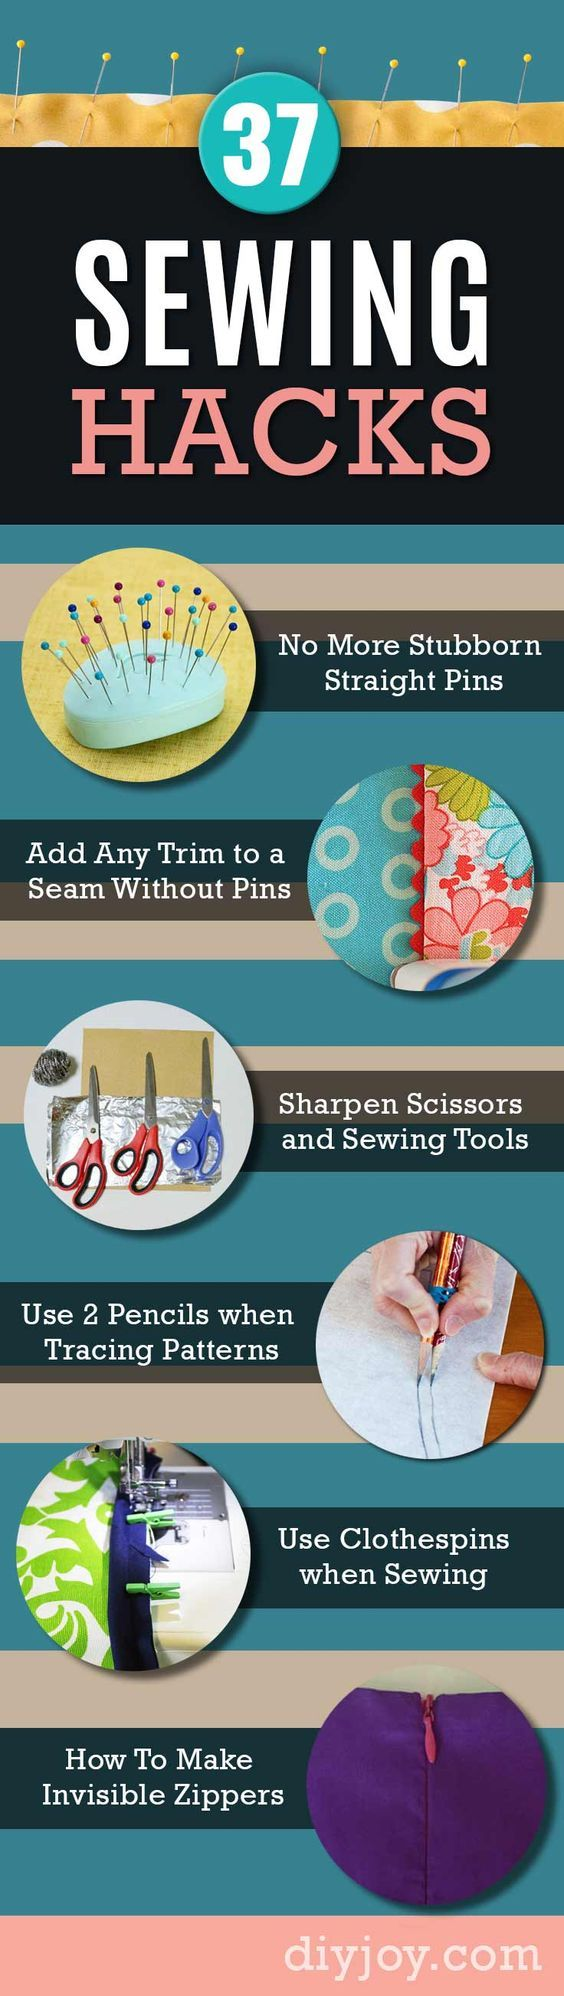 You HAVE TO check out these 10 AMAZING Money Saving Clothing Tips and Hacks! They're all such great ideas and I've tried a few and have GREAT results! I'm SO HAPPY I found this! Definitely pinning for later!